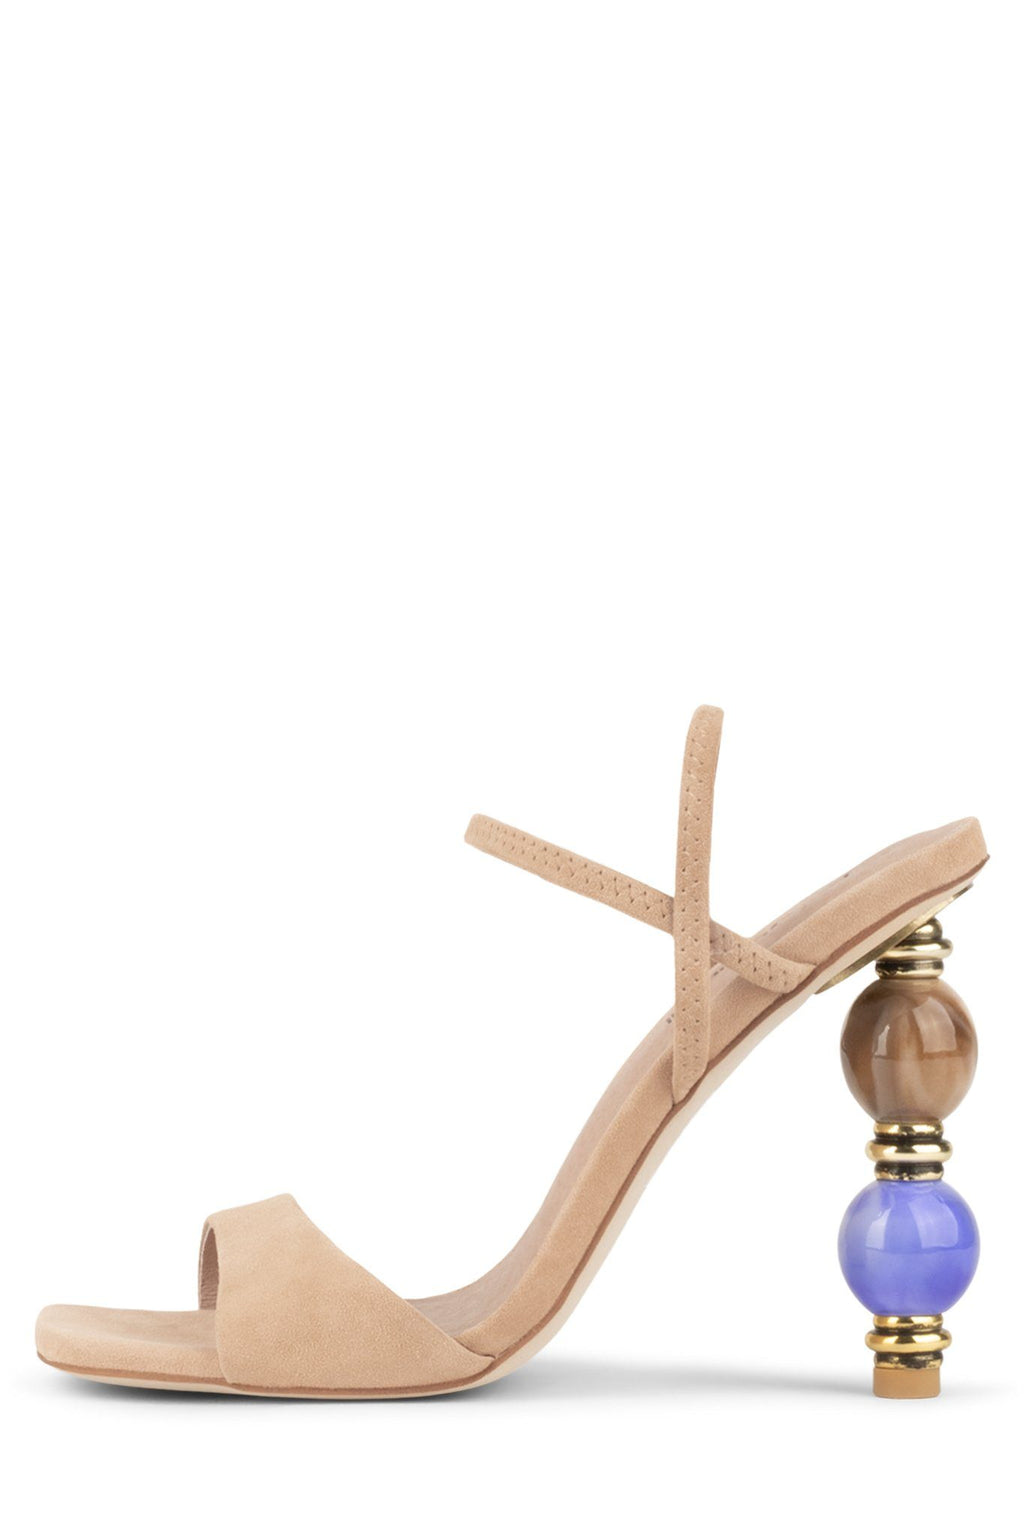 GEMA Heeled Sandal Jeffrey Campbell Natural Suede Blue 6